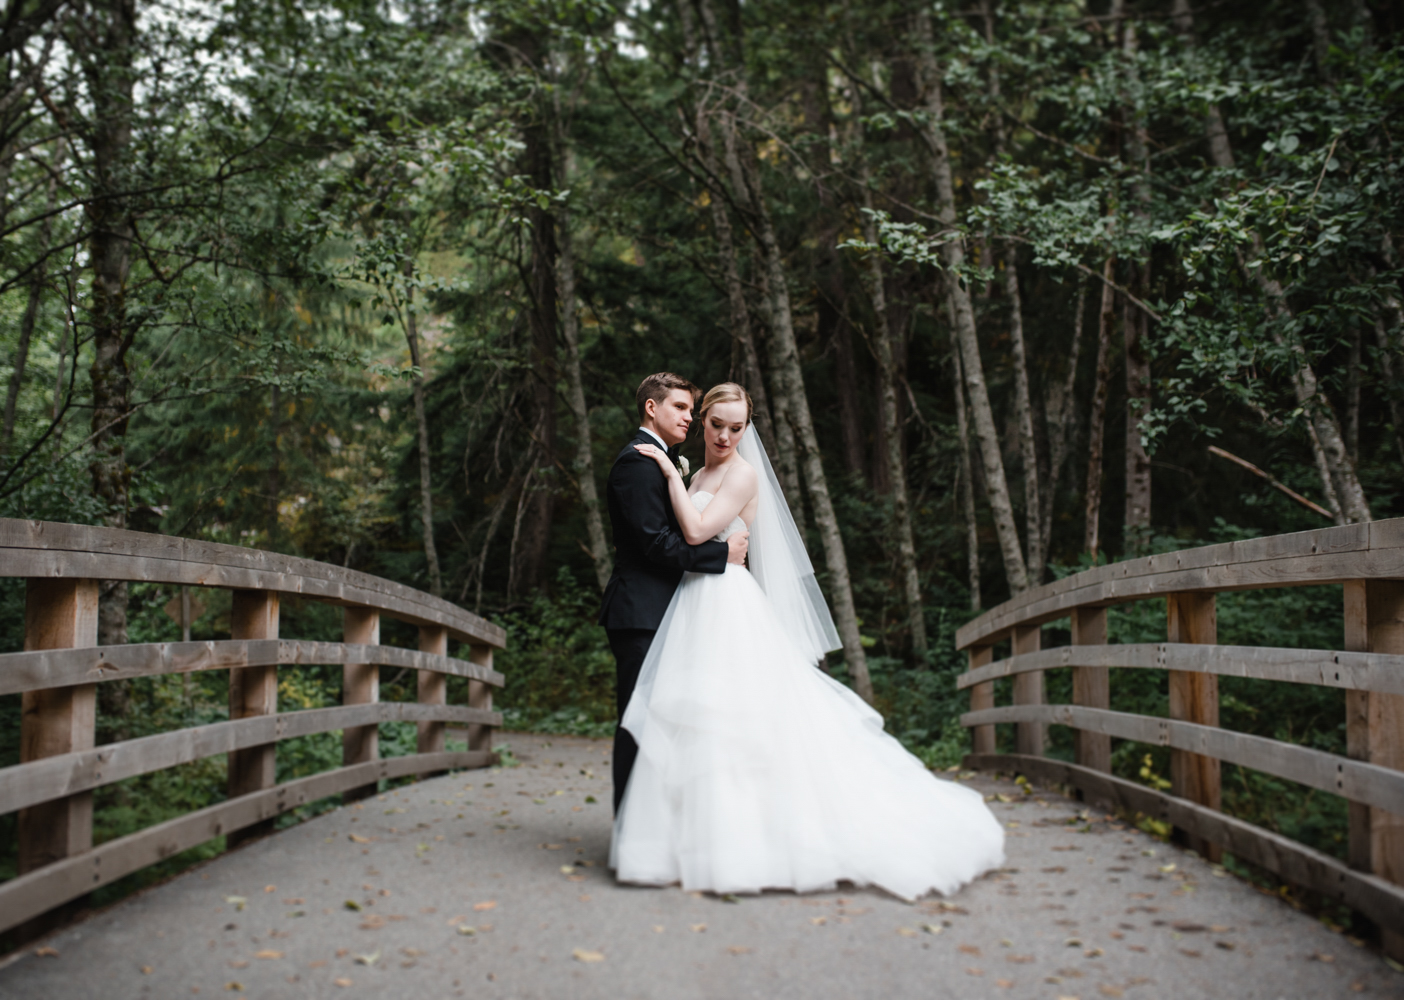 Nitalake wedding97.jpg